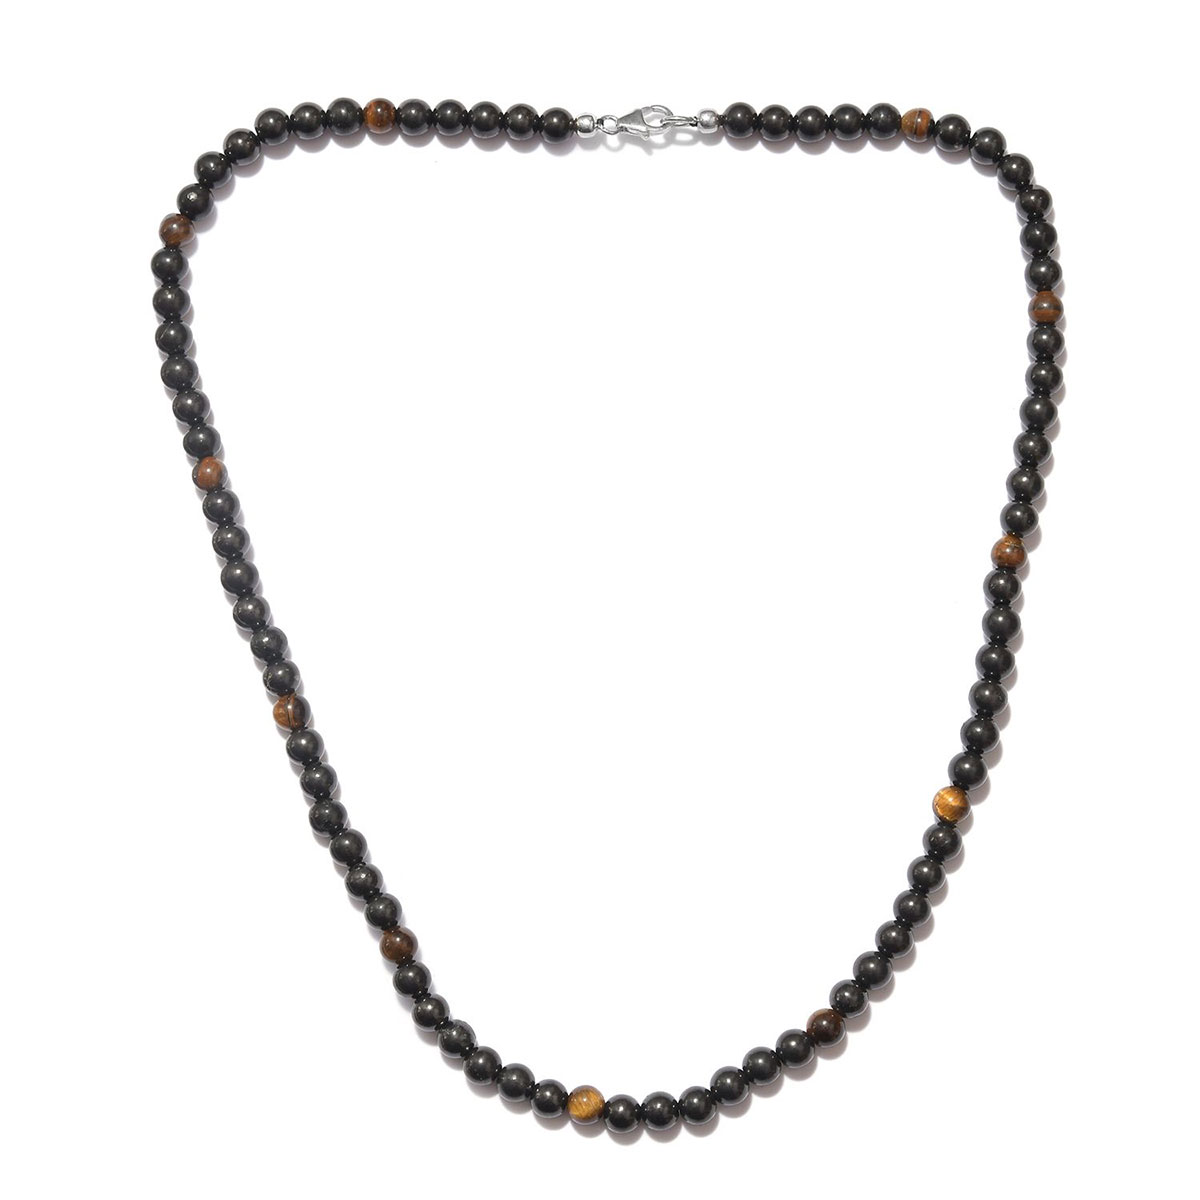 24 Inch 925 Sterling Silver Rhodium-plated Lobster Claw Closure Rhodium Plated Black Tigers Eye Necklace